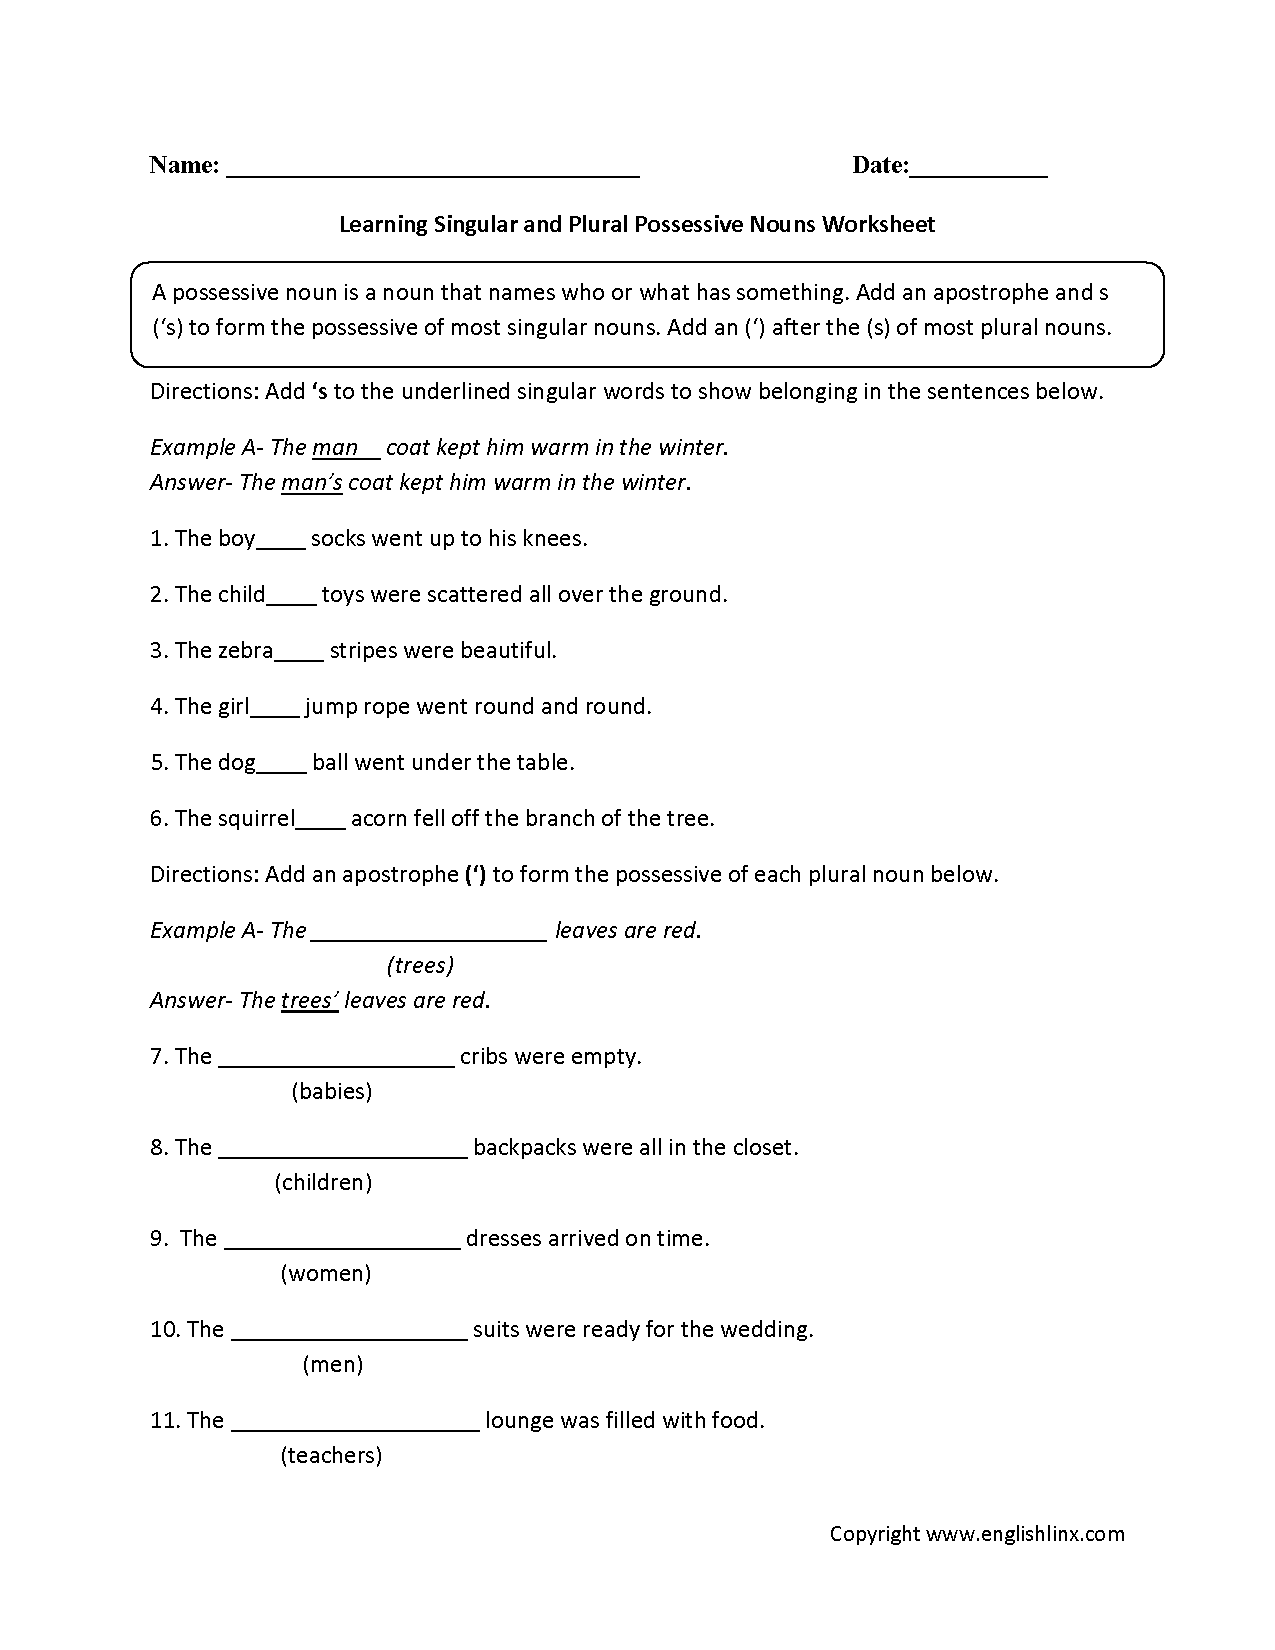 Worksheets Possessive Nouns Worksheets nouns worksheets possessive worksheets